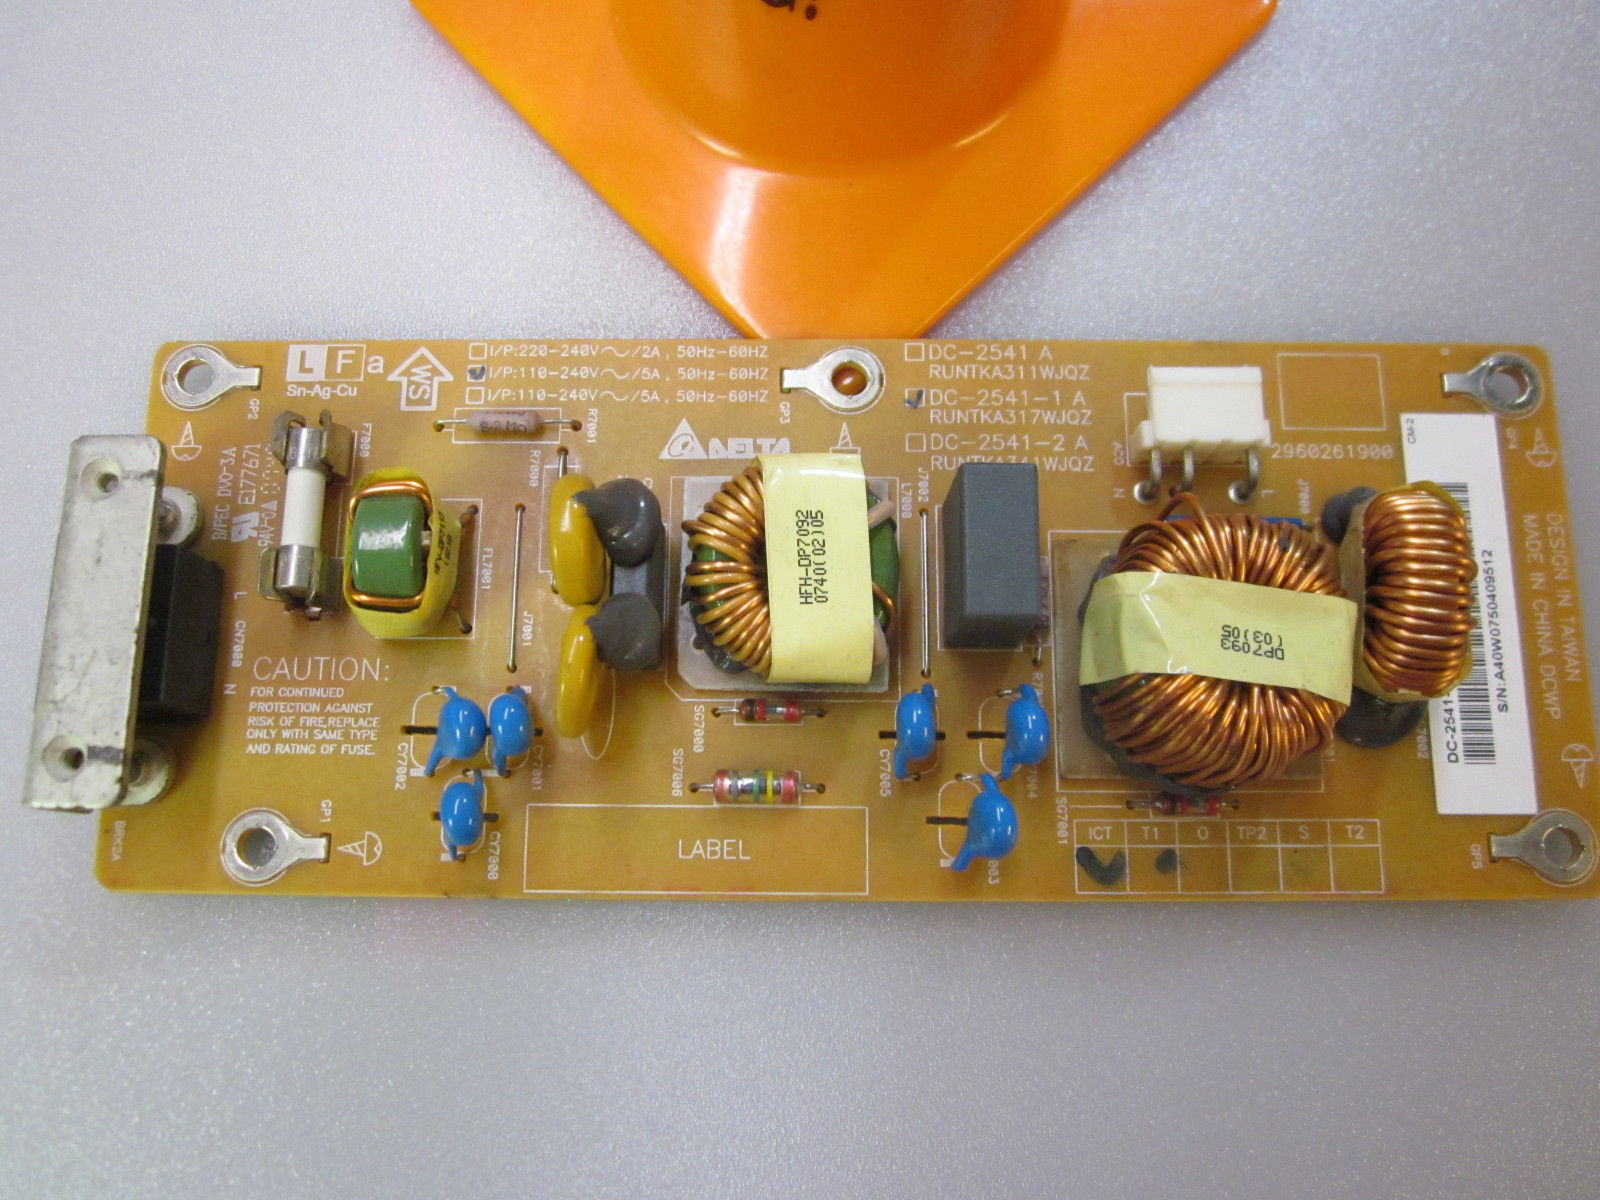 Primary image for Sharp RUNTKA317WJQZ (DC-2541-1 A, 2960261900) SMPS Board